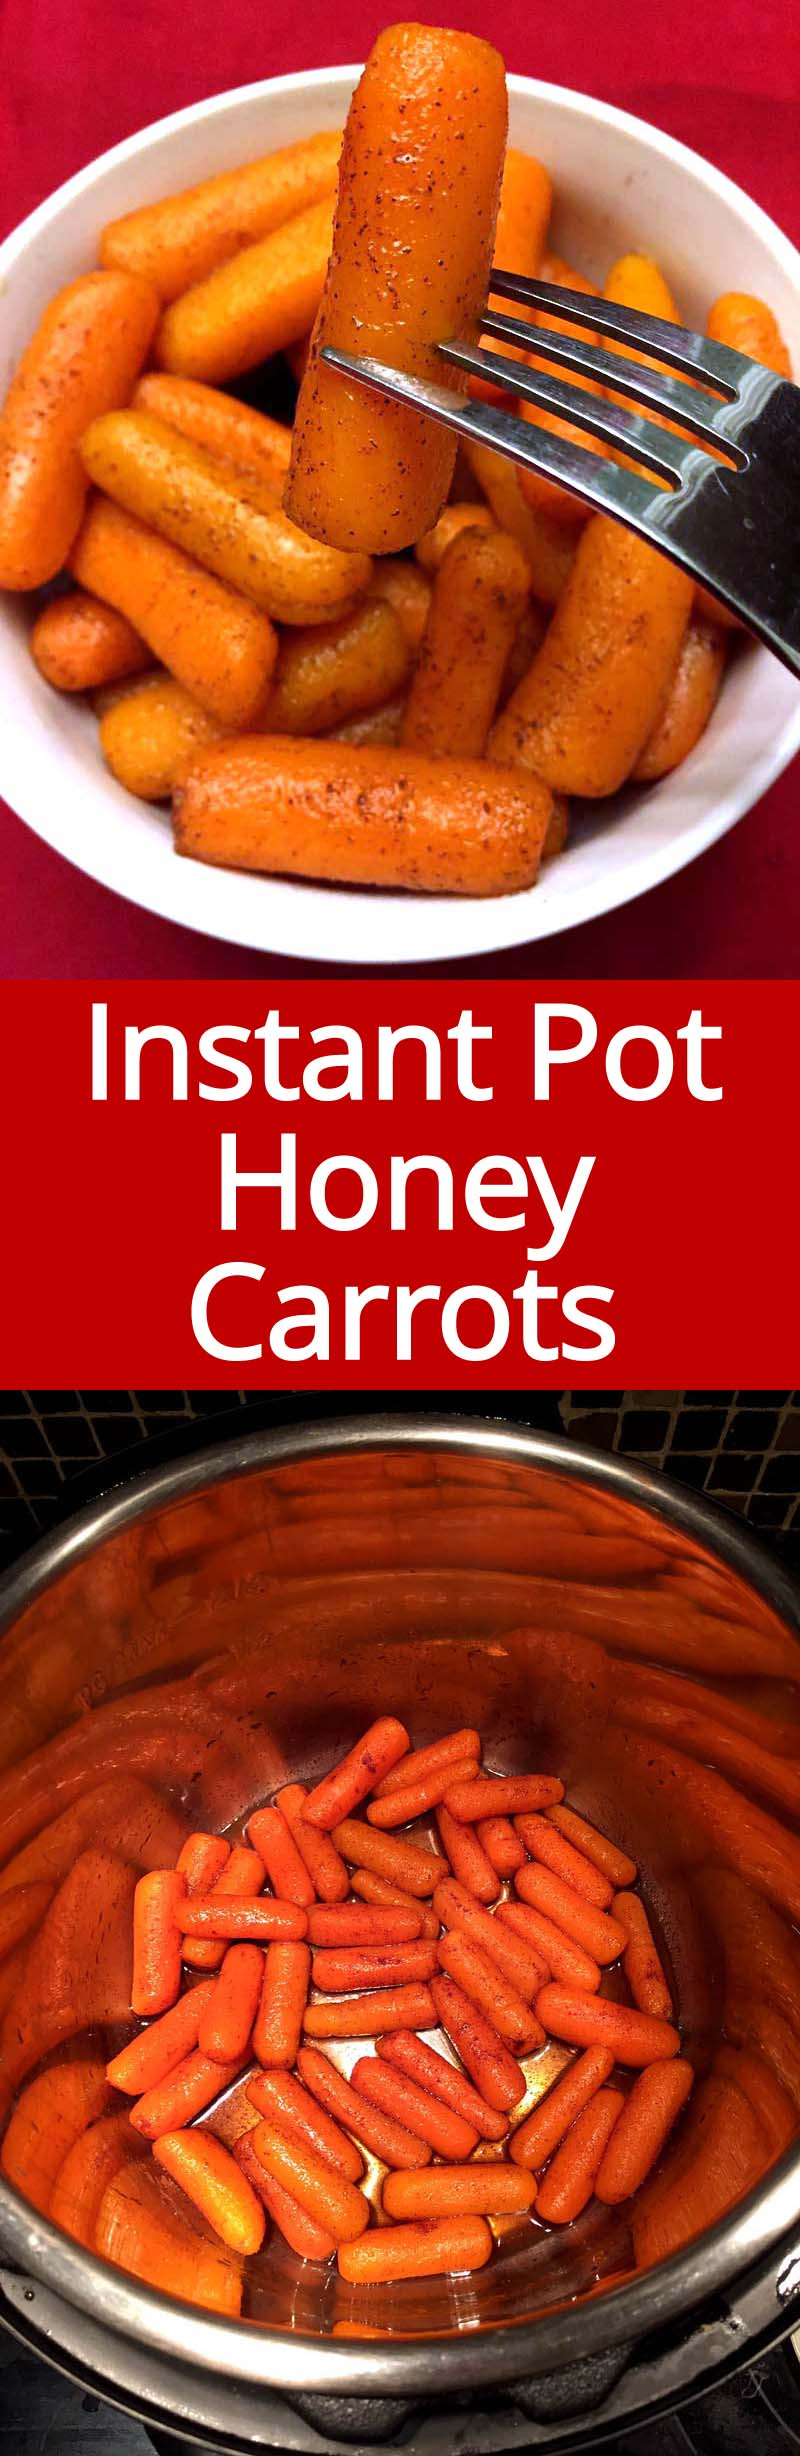 These Instant Pot baby carrots are amazing! So easy to make and so delicious with cinnamon honey glaze! They are actually pretty healthy too as this recipe is using just honey to sweeten the carrots!